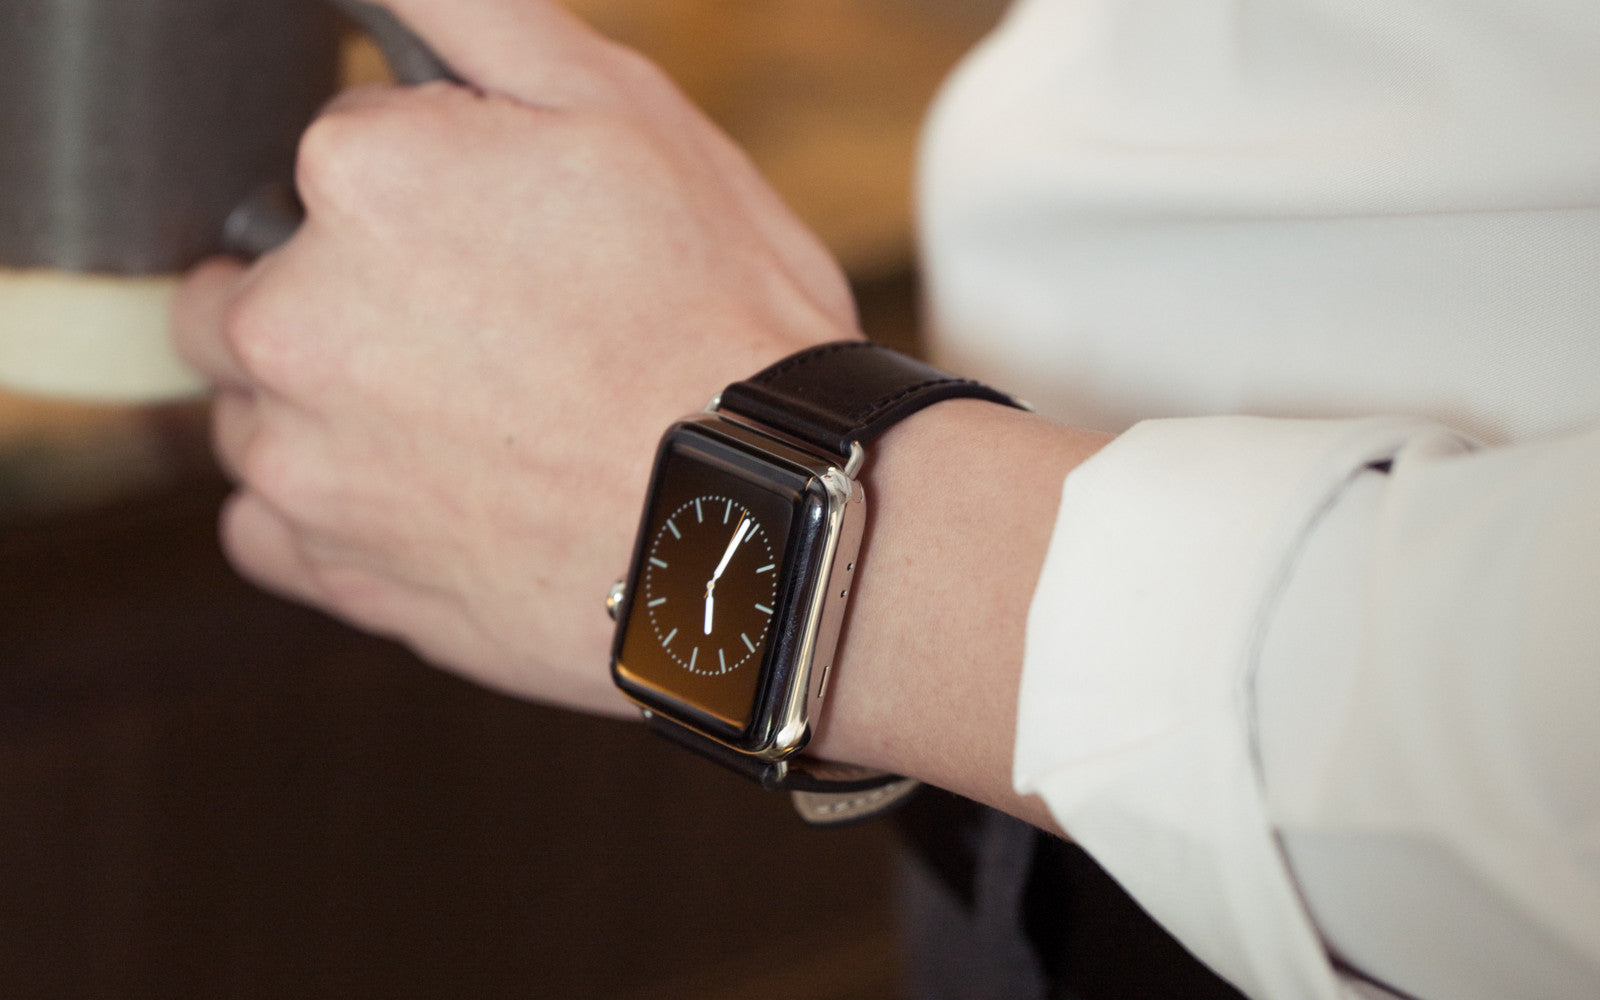 Pin and Buckle Apple Watch Bands - Full Grain Vegetable Tanned Leather - Luxe - Nero Black - Silver - 2